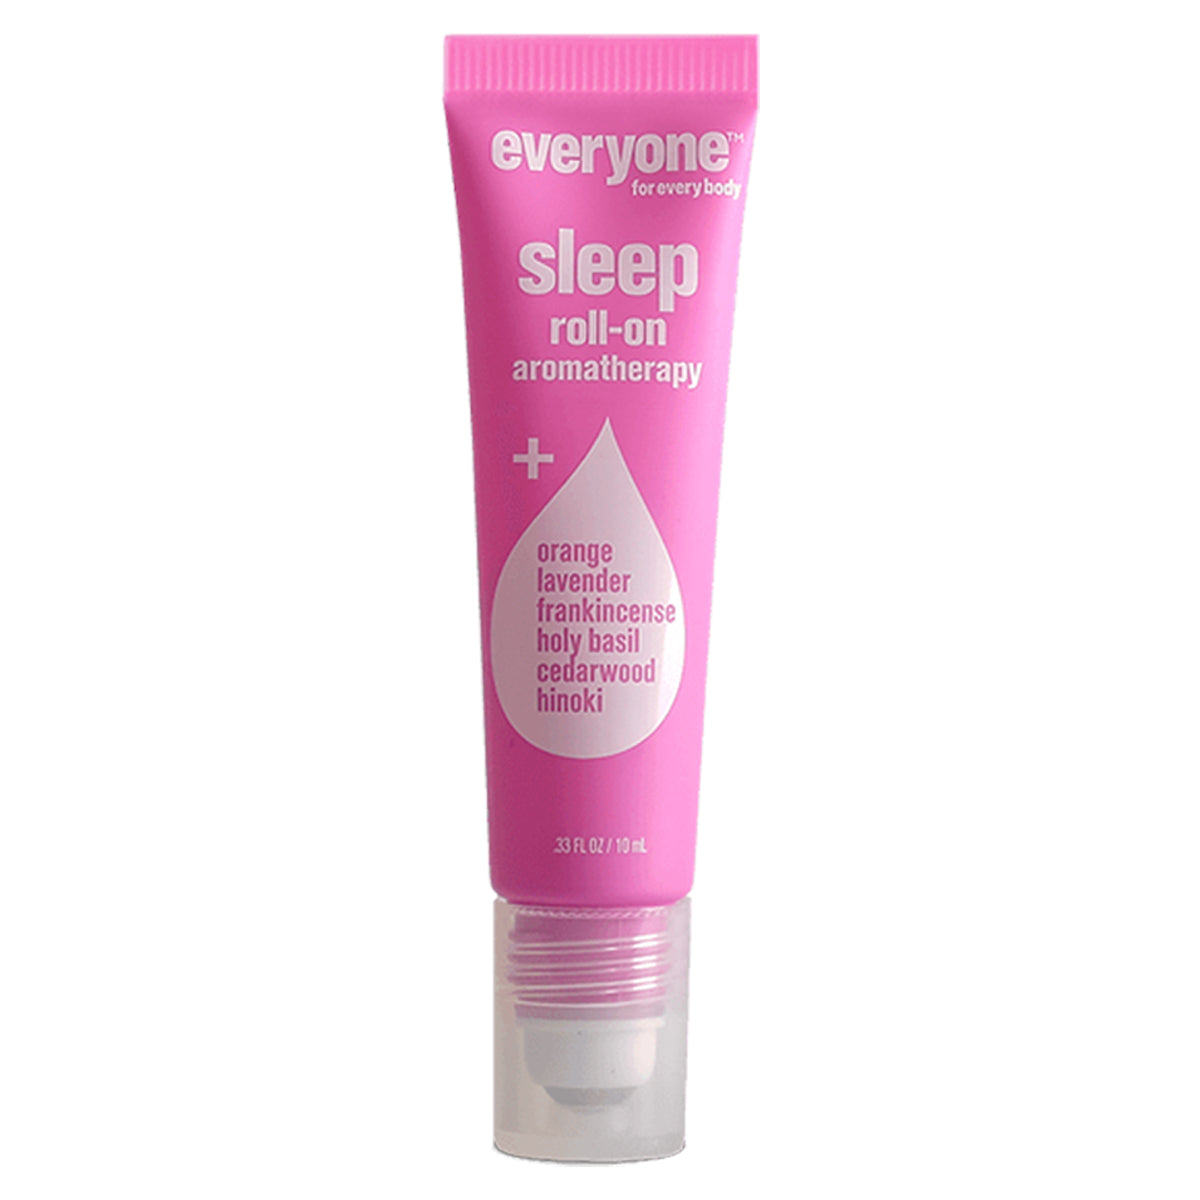 everyone Sleep Roll-on Aromatherapy - Travel PAKT